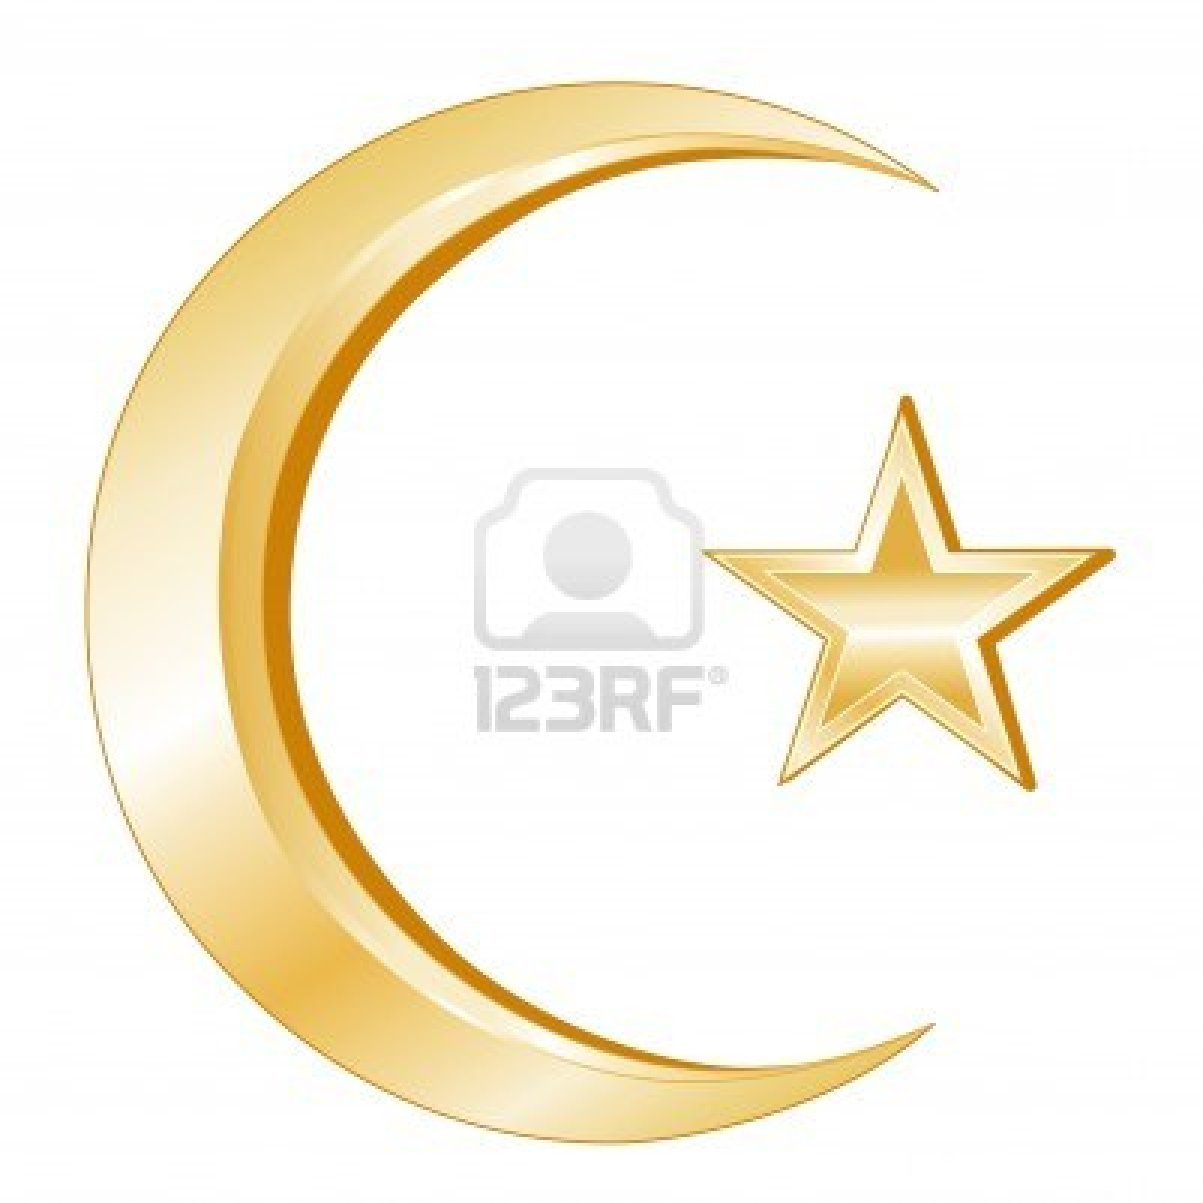 Muslim Symbol Pictures To Pin On Pinterest